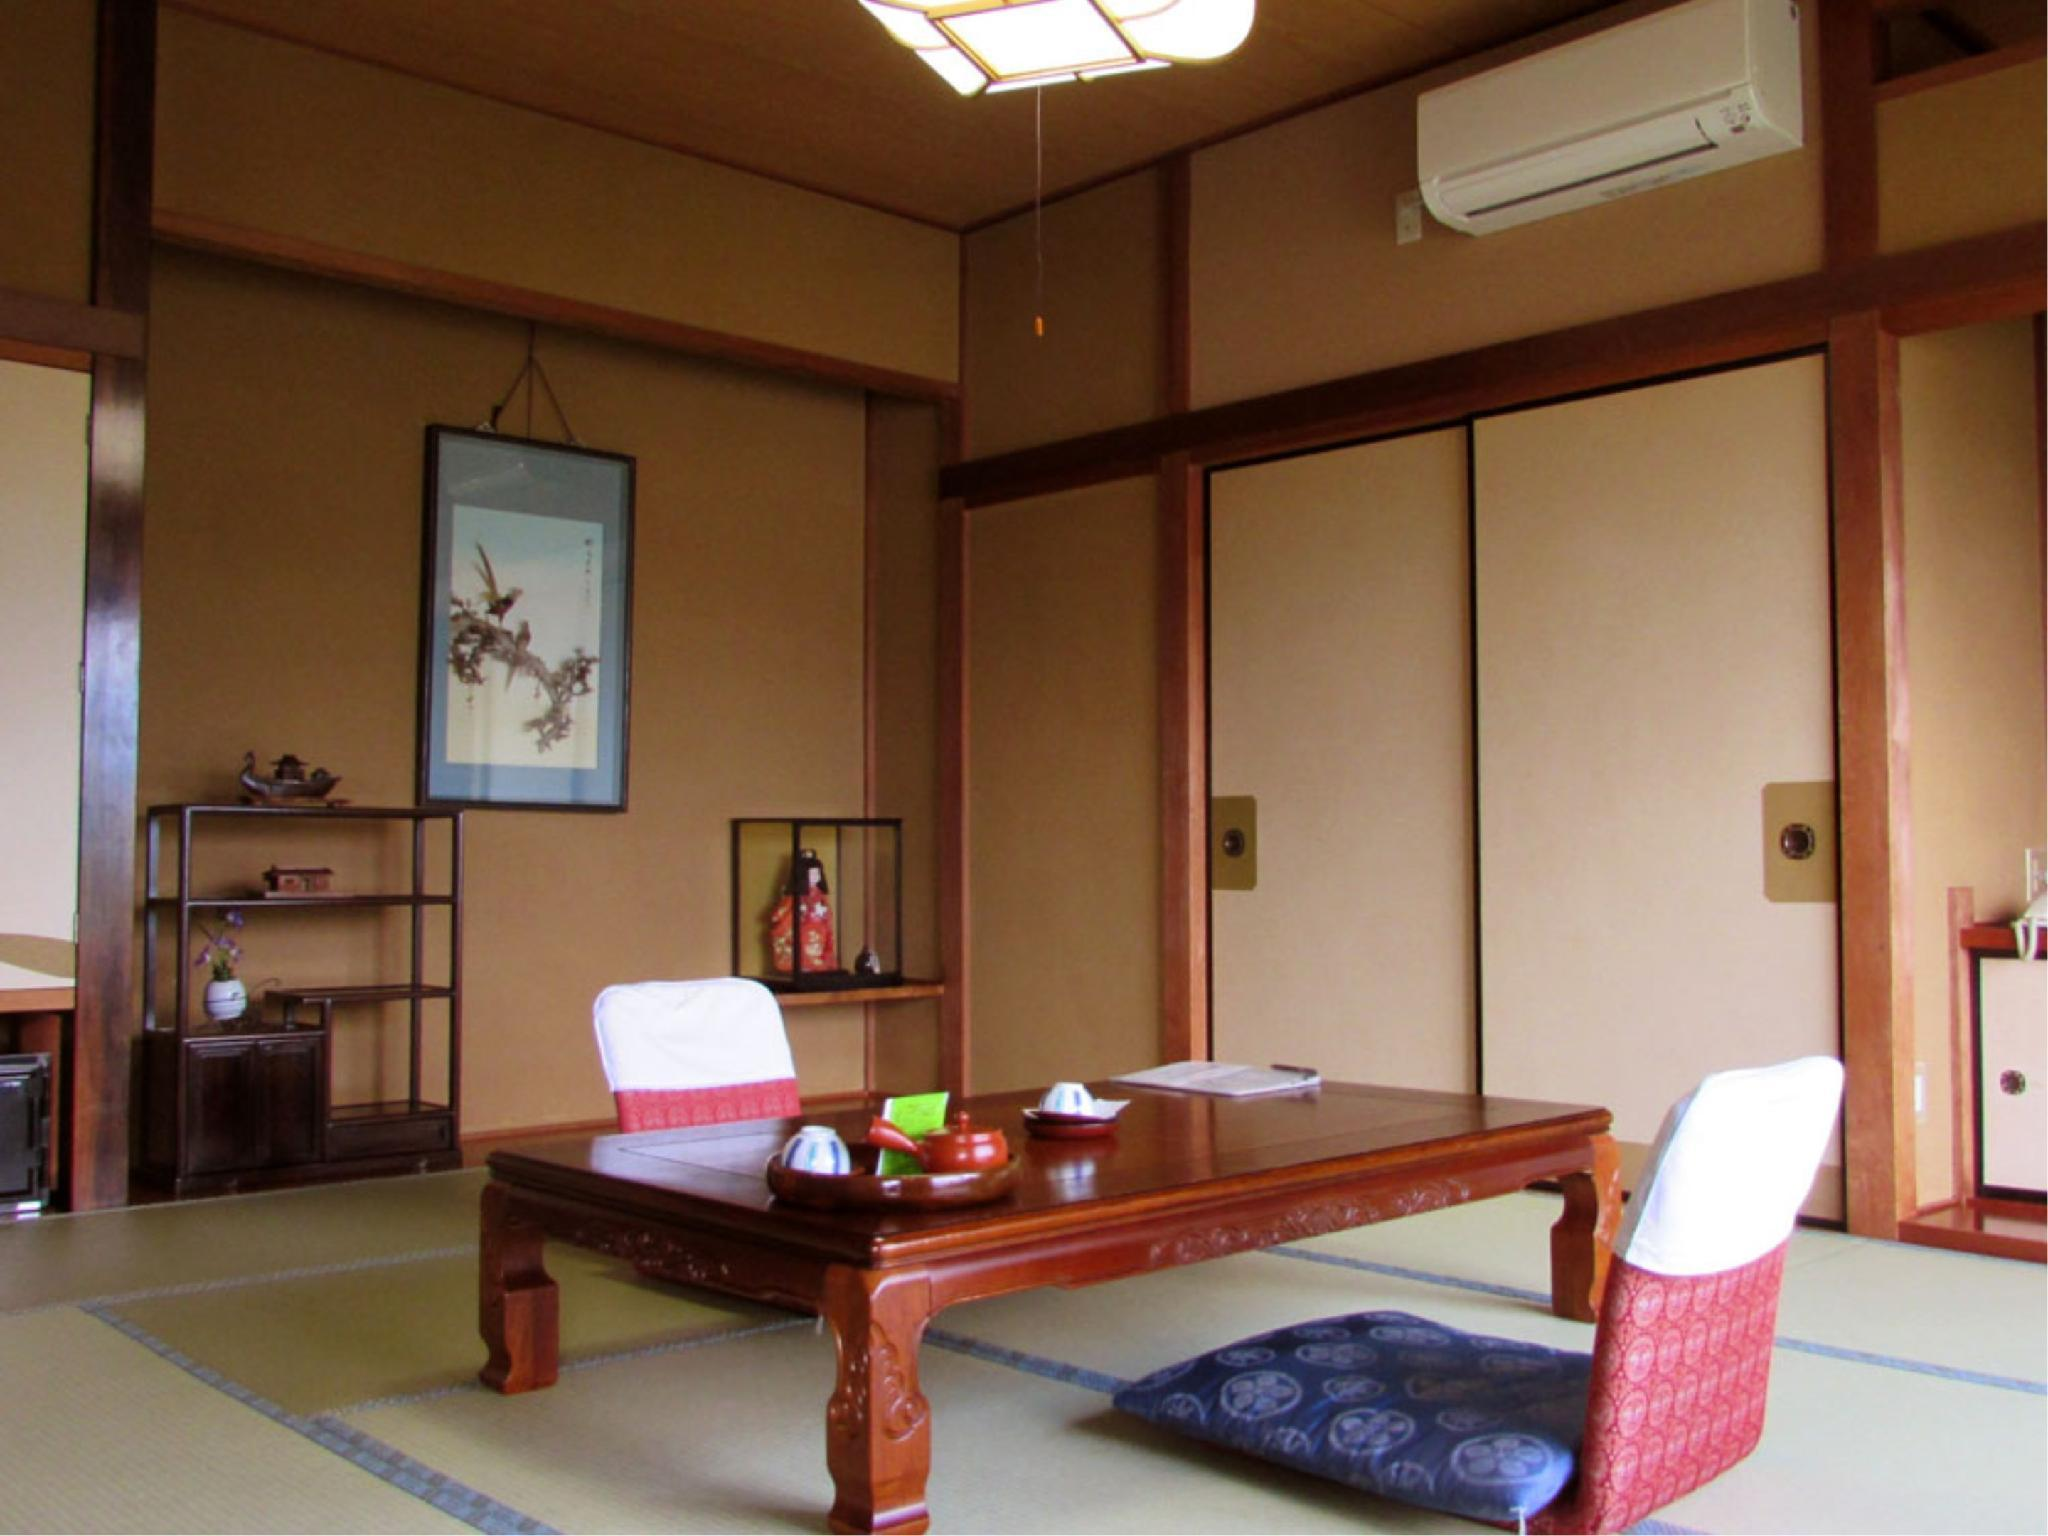 Japanese-style Room *Has toilet, no bath in room